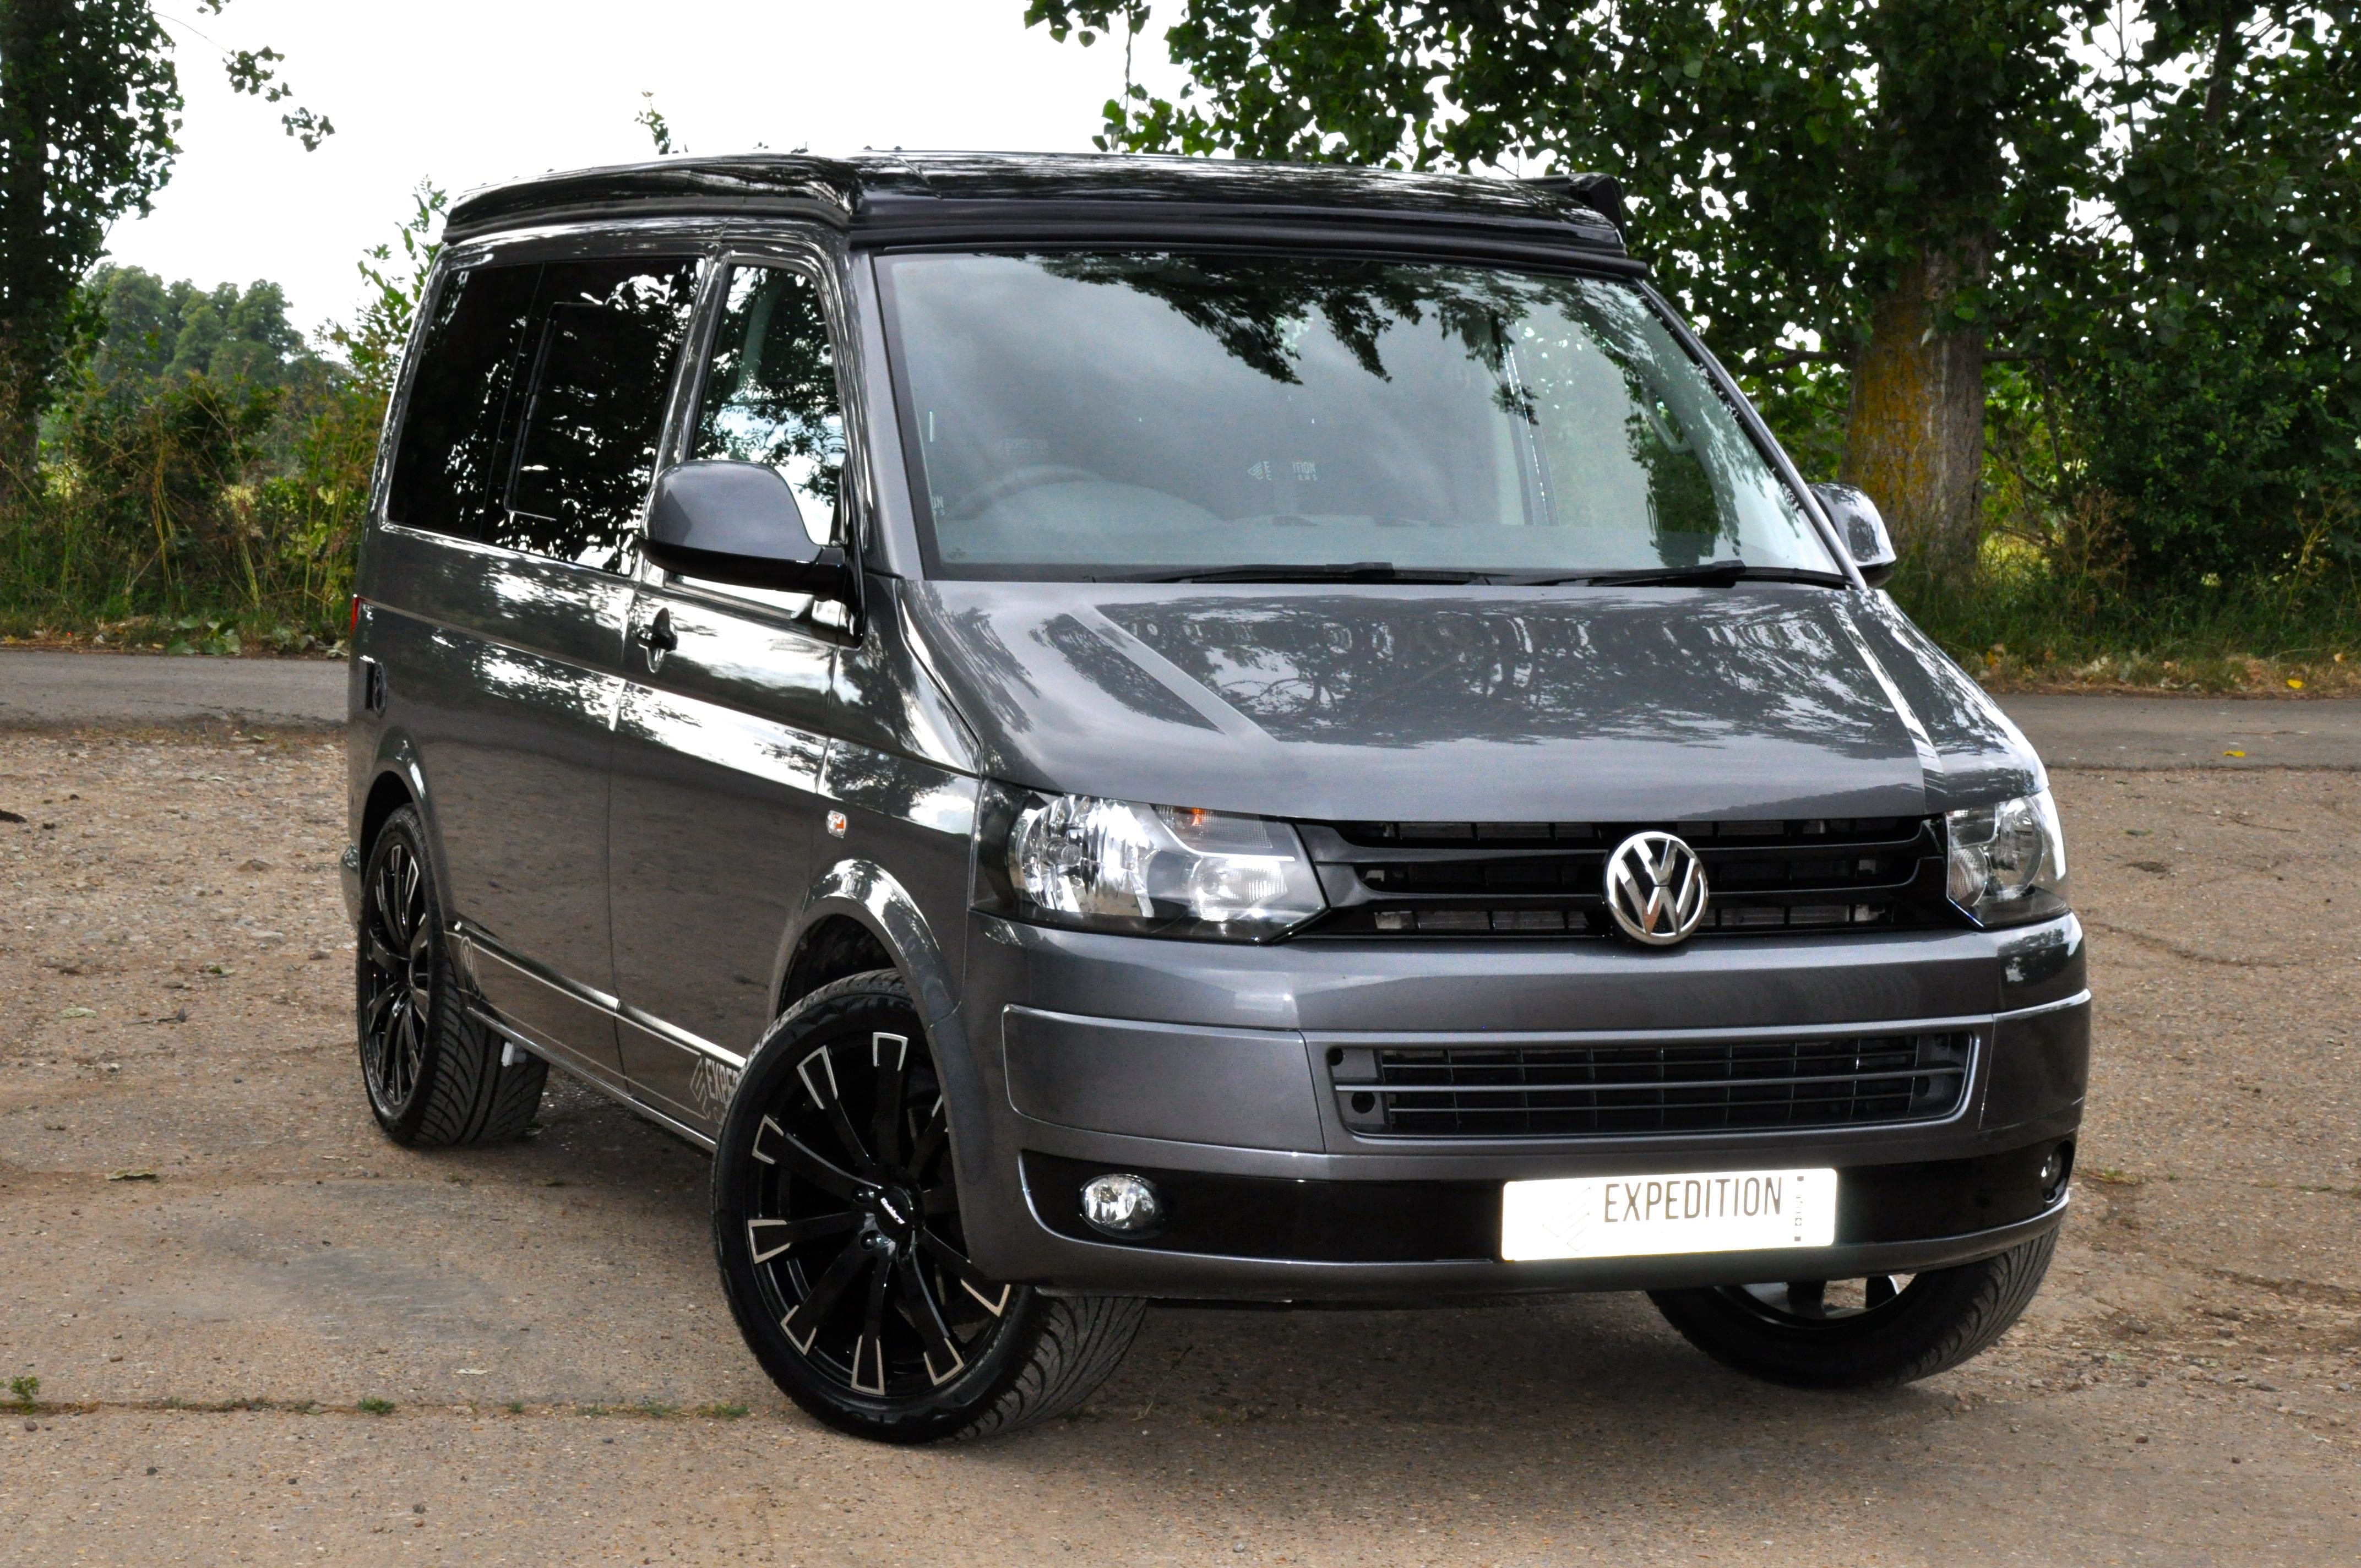 Vw T5 Highline Dsg Automatic 140 Bhp Swb Expo Trek Only 18000 Miles Now Sold Expedition Campers